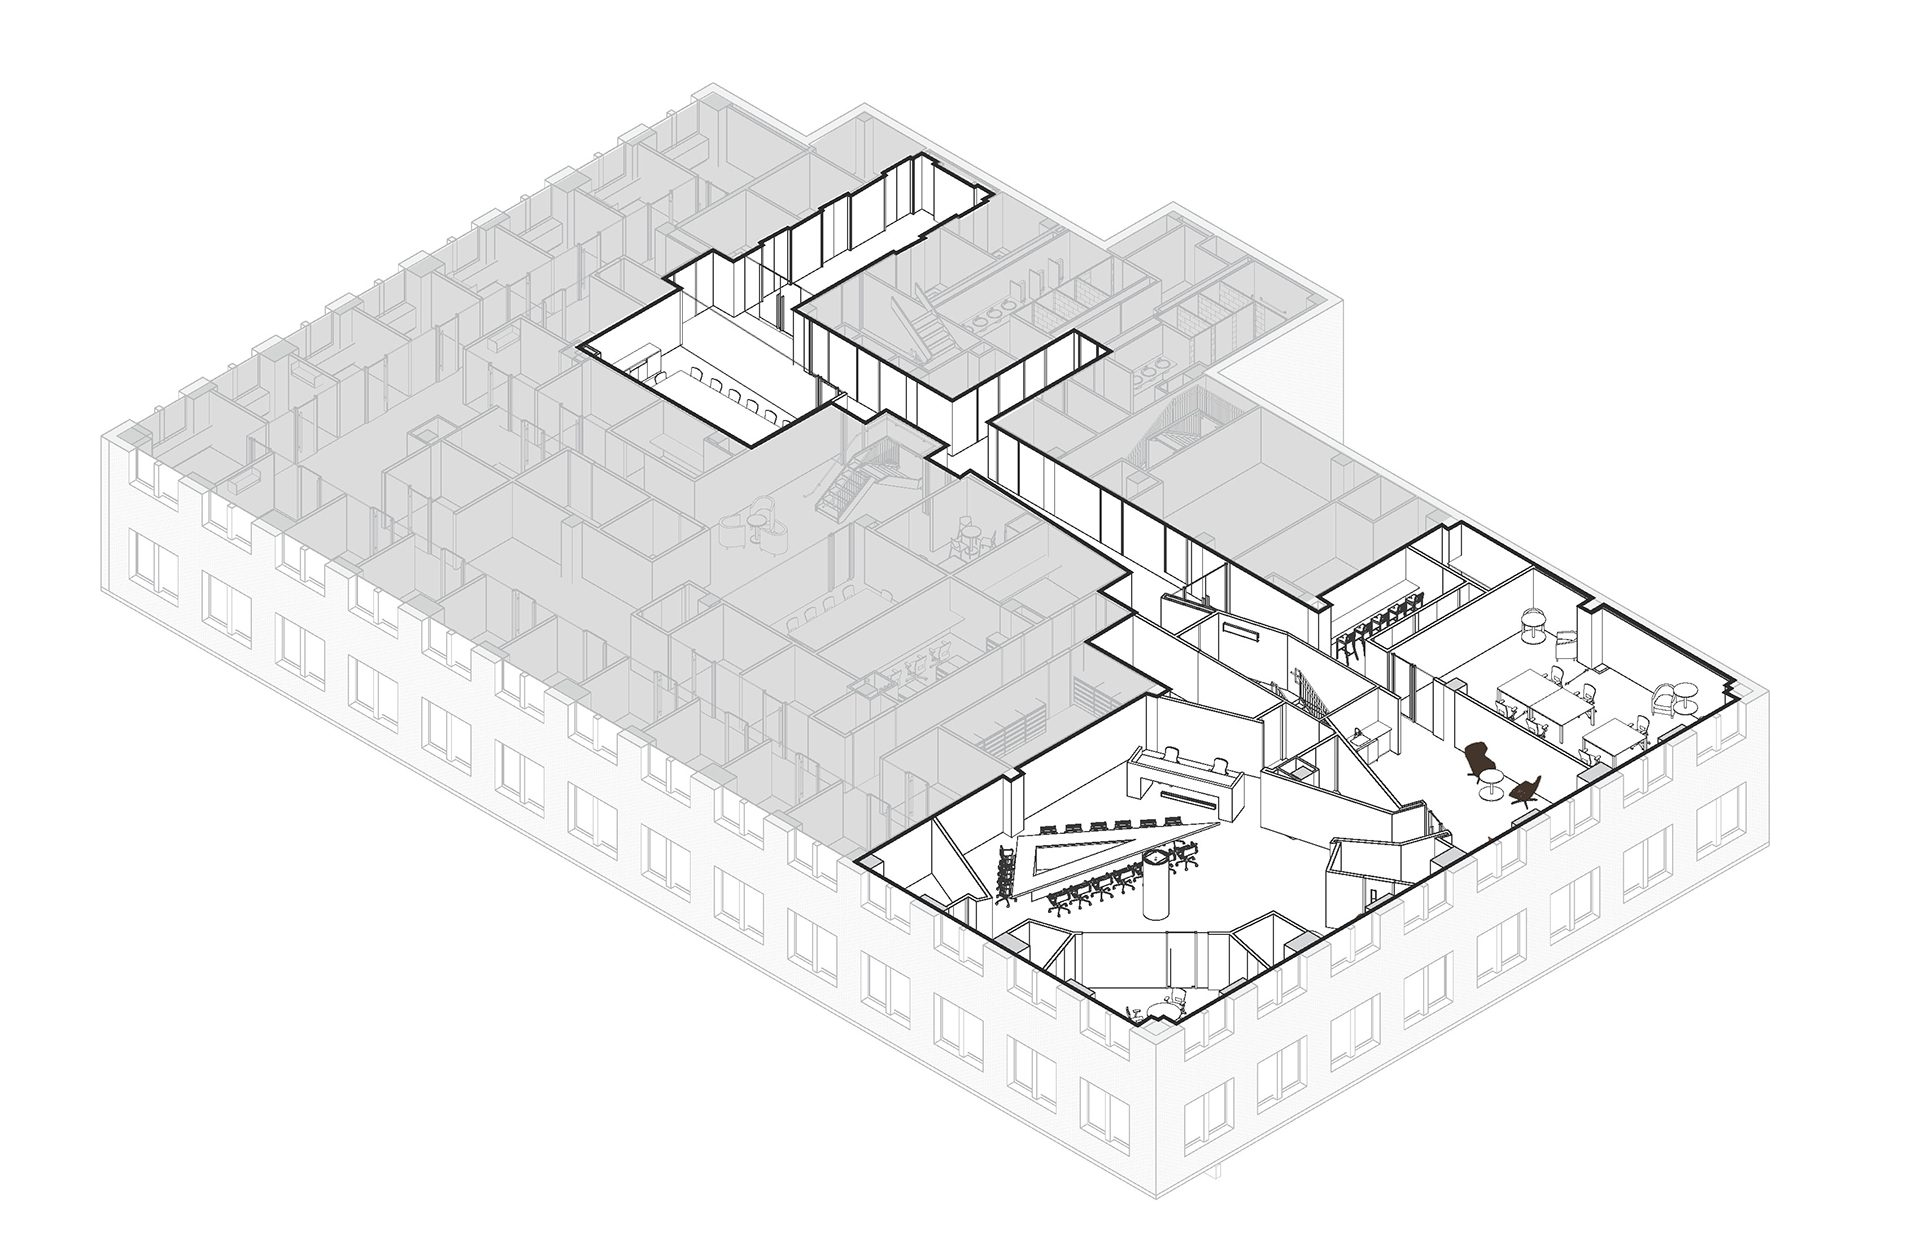 Axonometric floorplan of the new KPMG Ignition, Innovation, and Insights Center